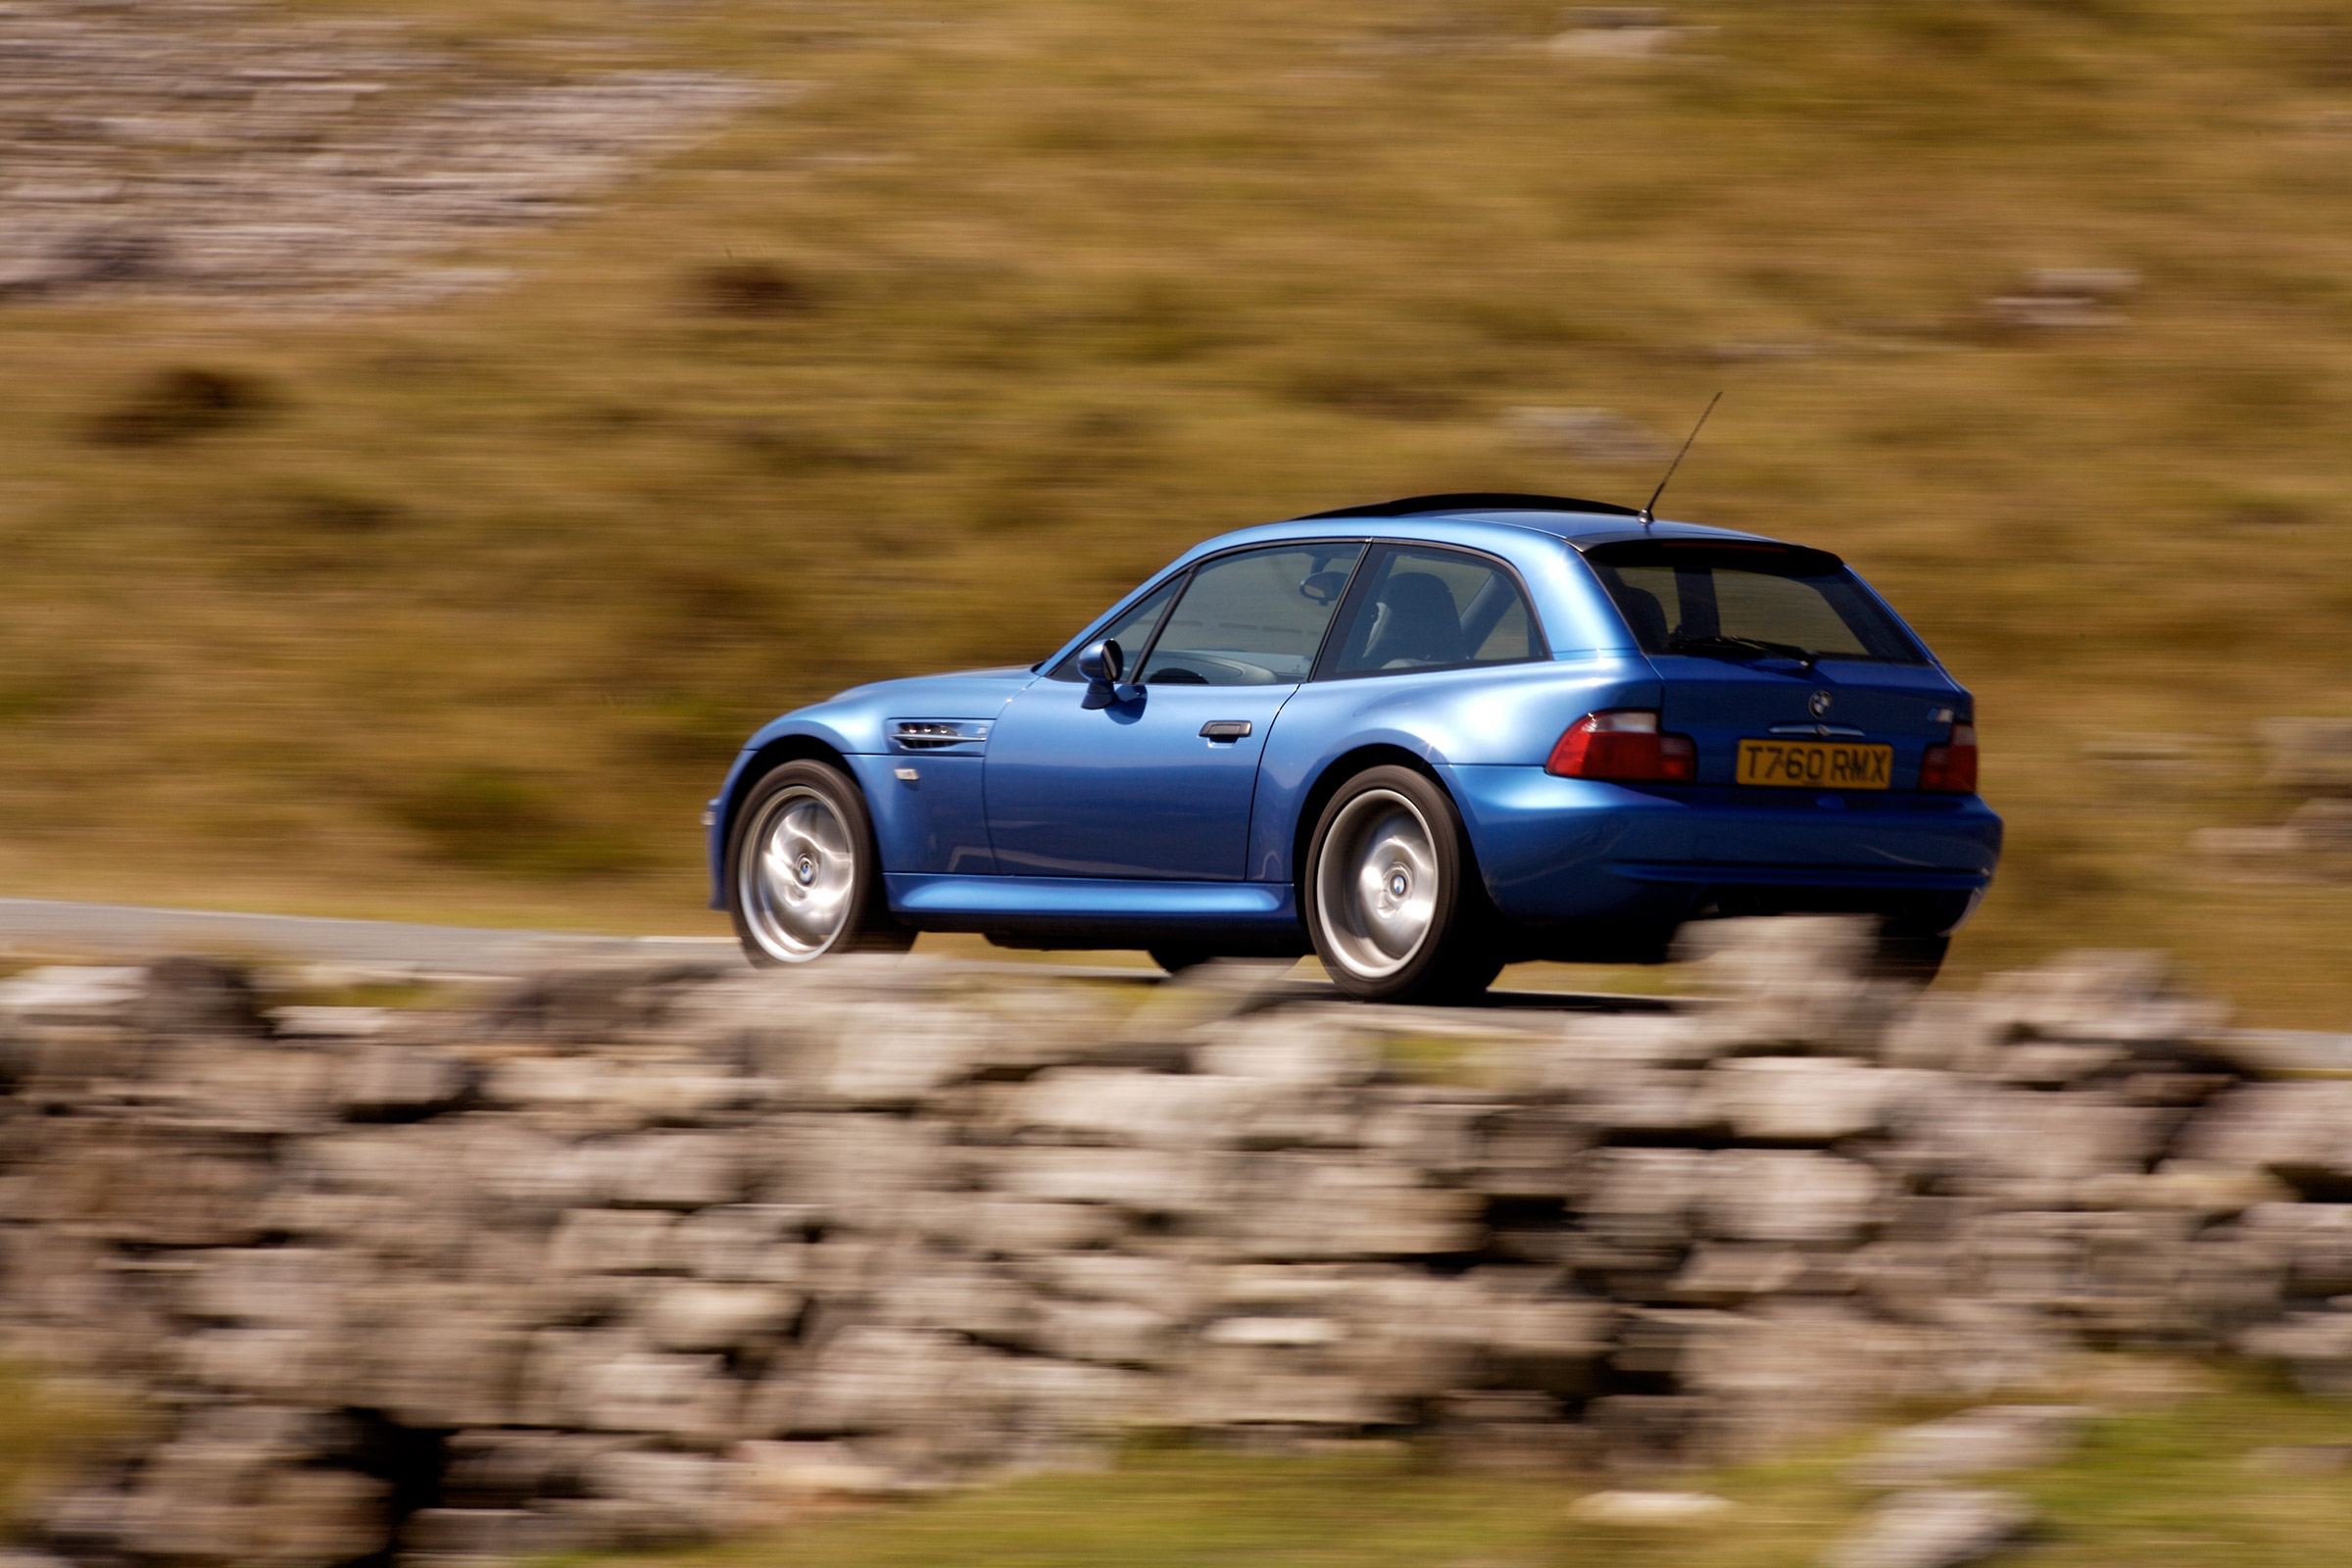 BMW M Coupe (1998-2002) - review, specs and buying guide | Evo